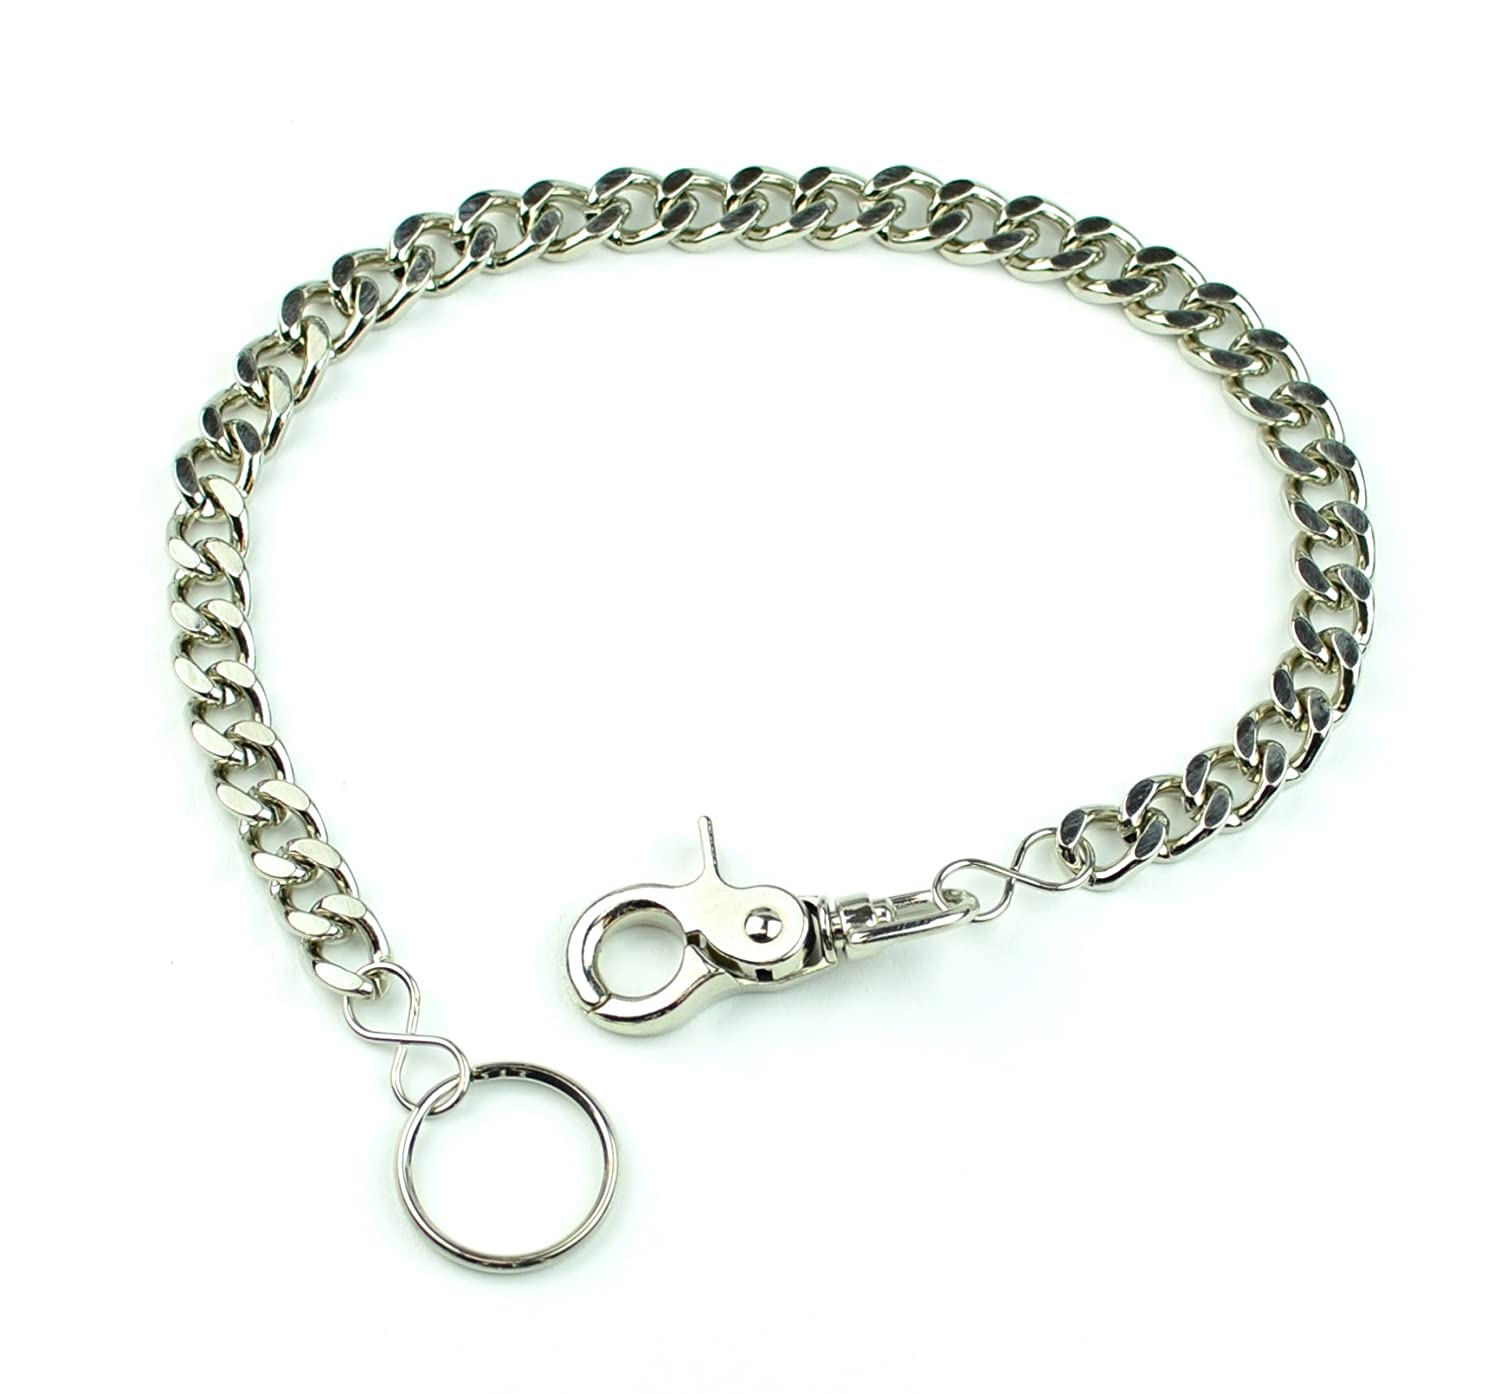 Wallet Chain Heavy Diamond Cut Keychain or Biker Punk Rock Style with Trigger Clasp DC